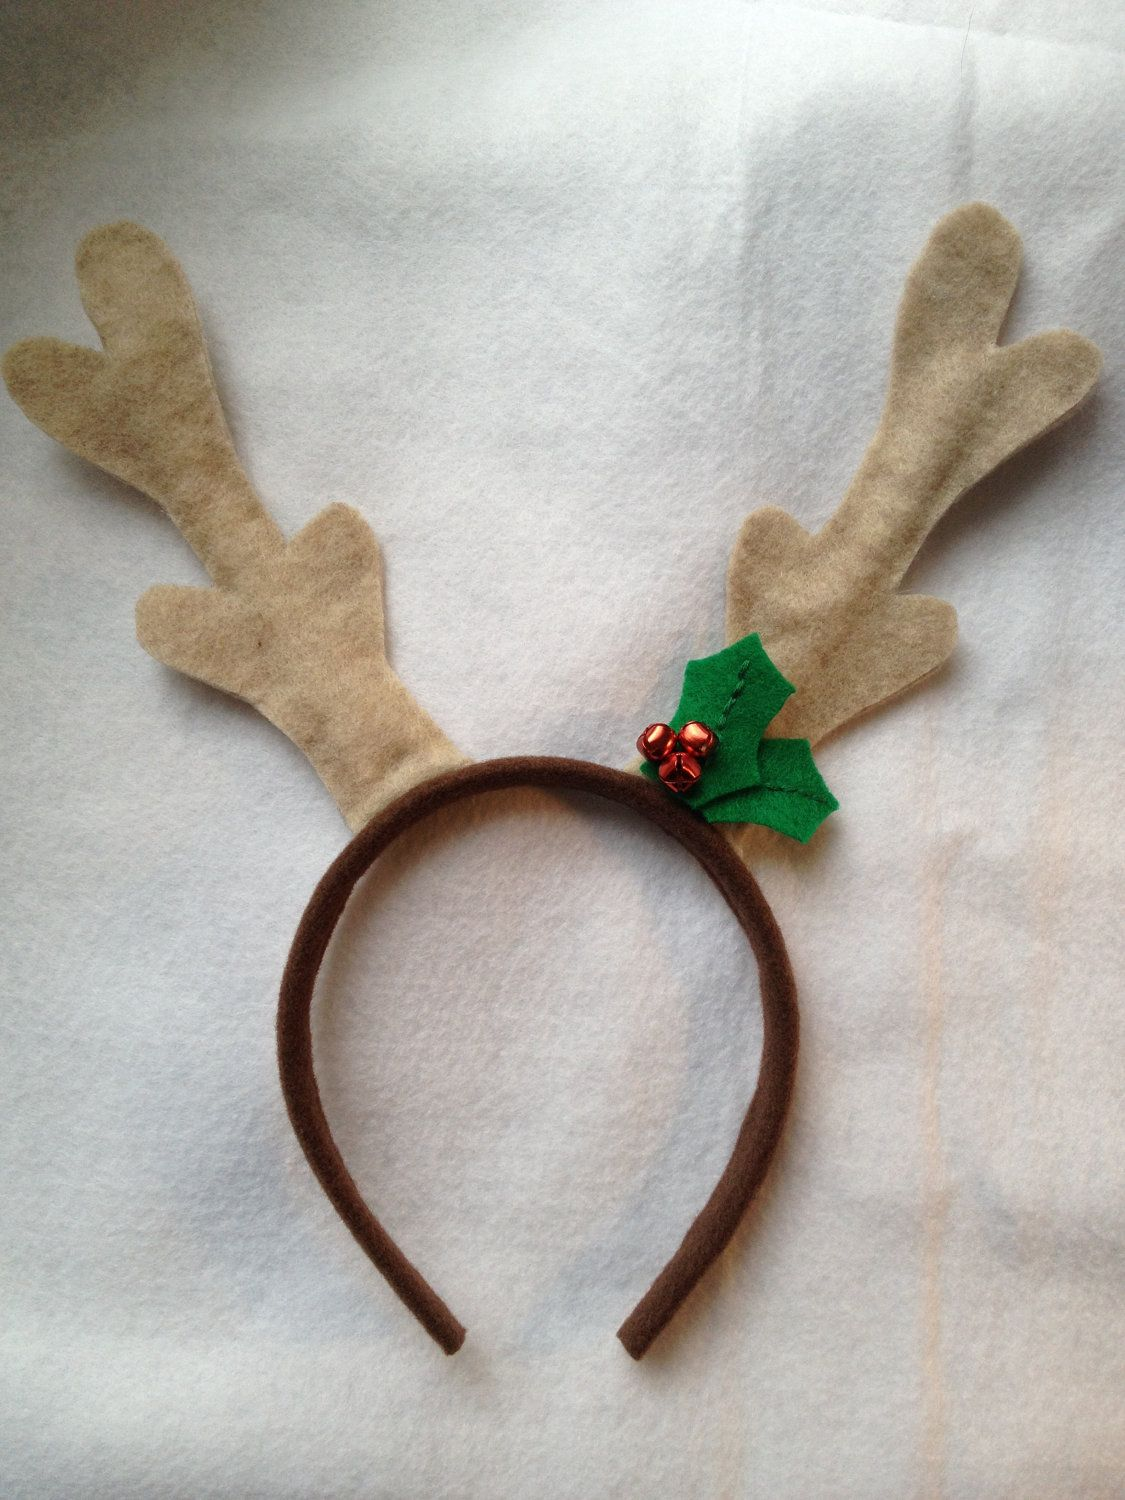 Dinnerbydesign i 39 m a sucker for silly holiday headbands for Reindeer antlers headband craft